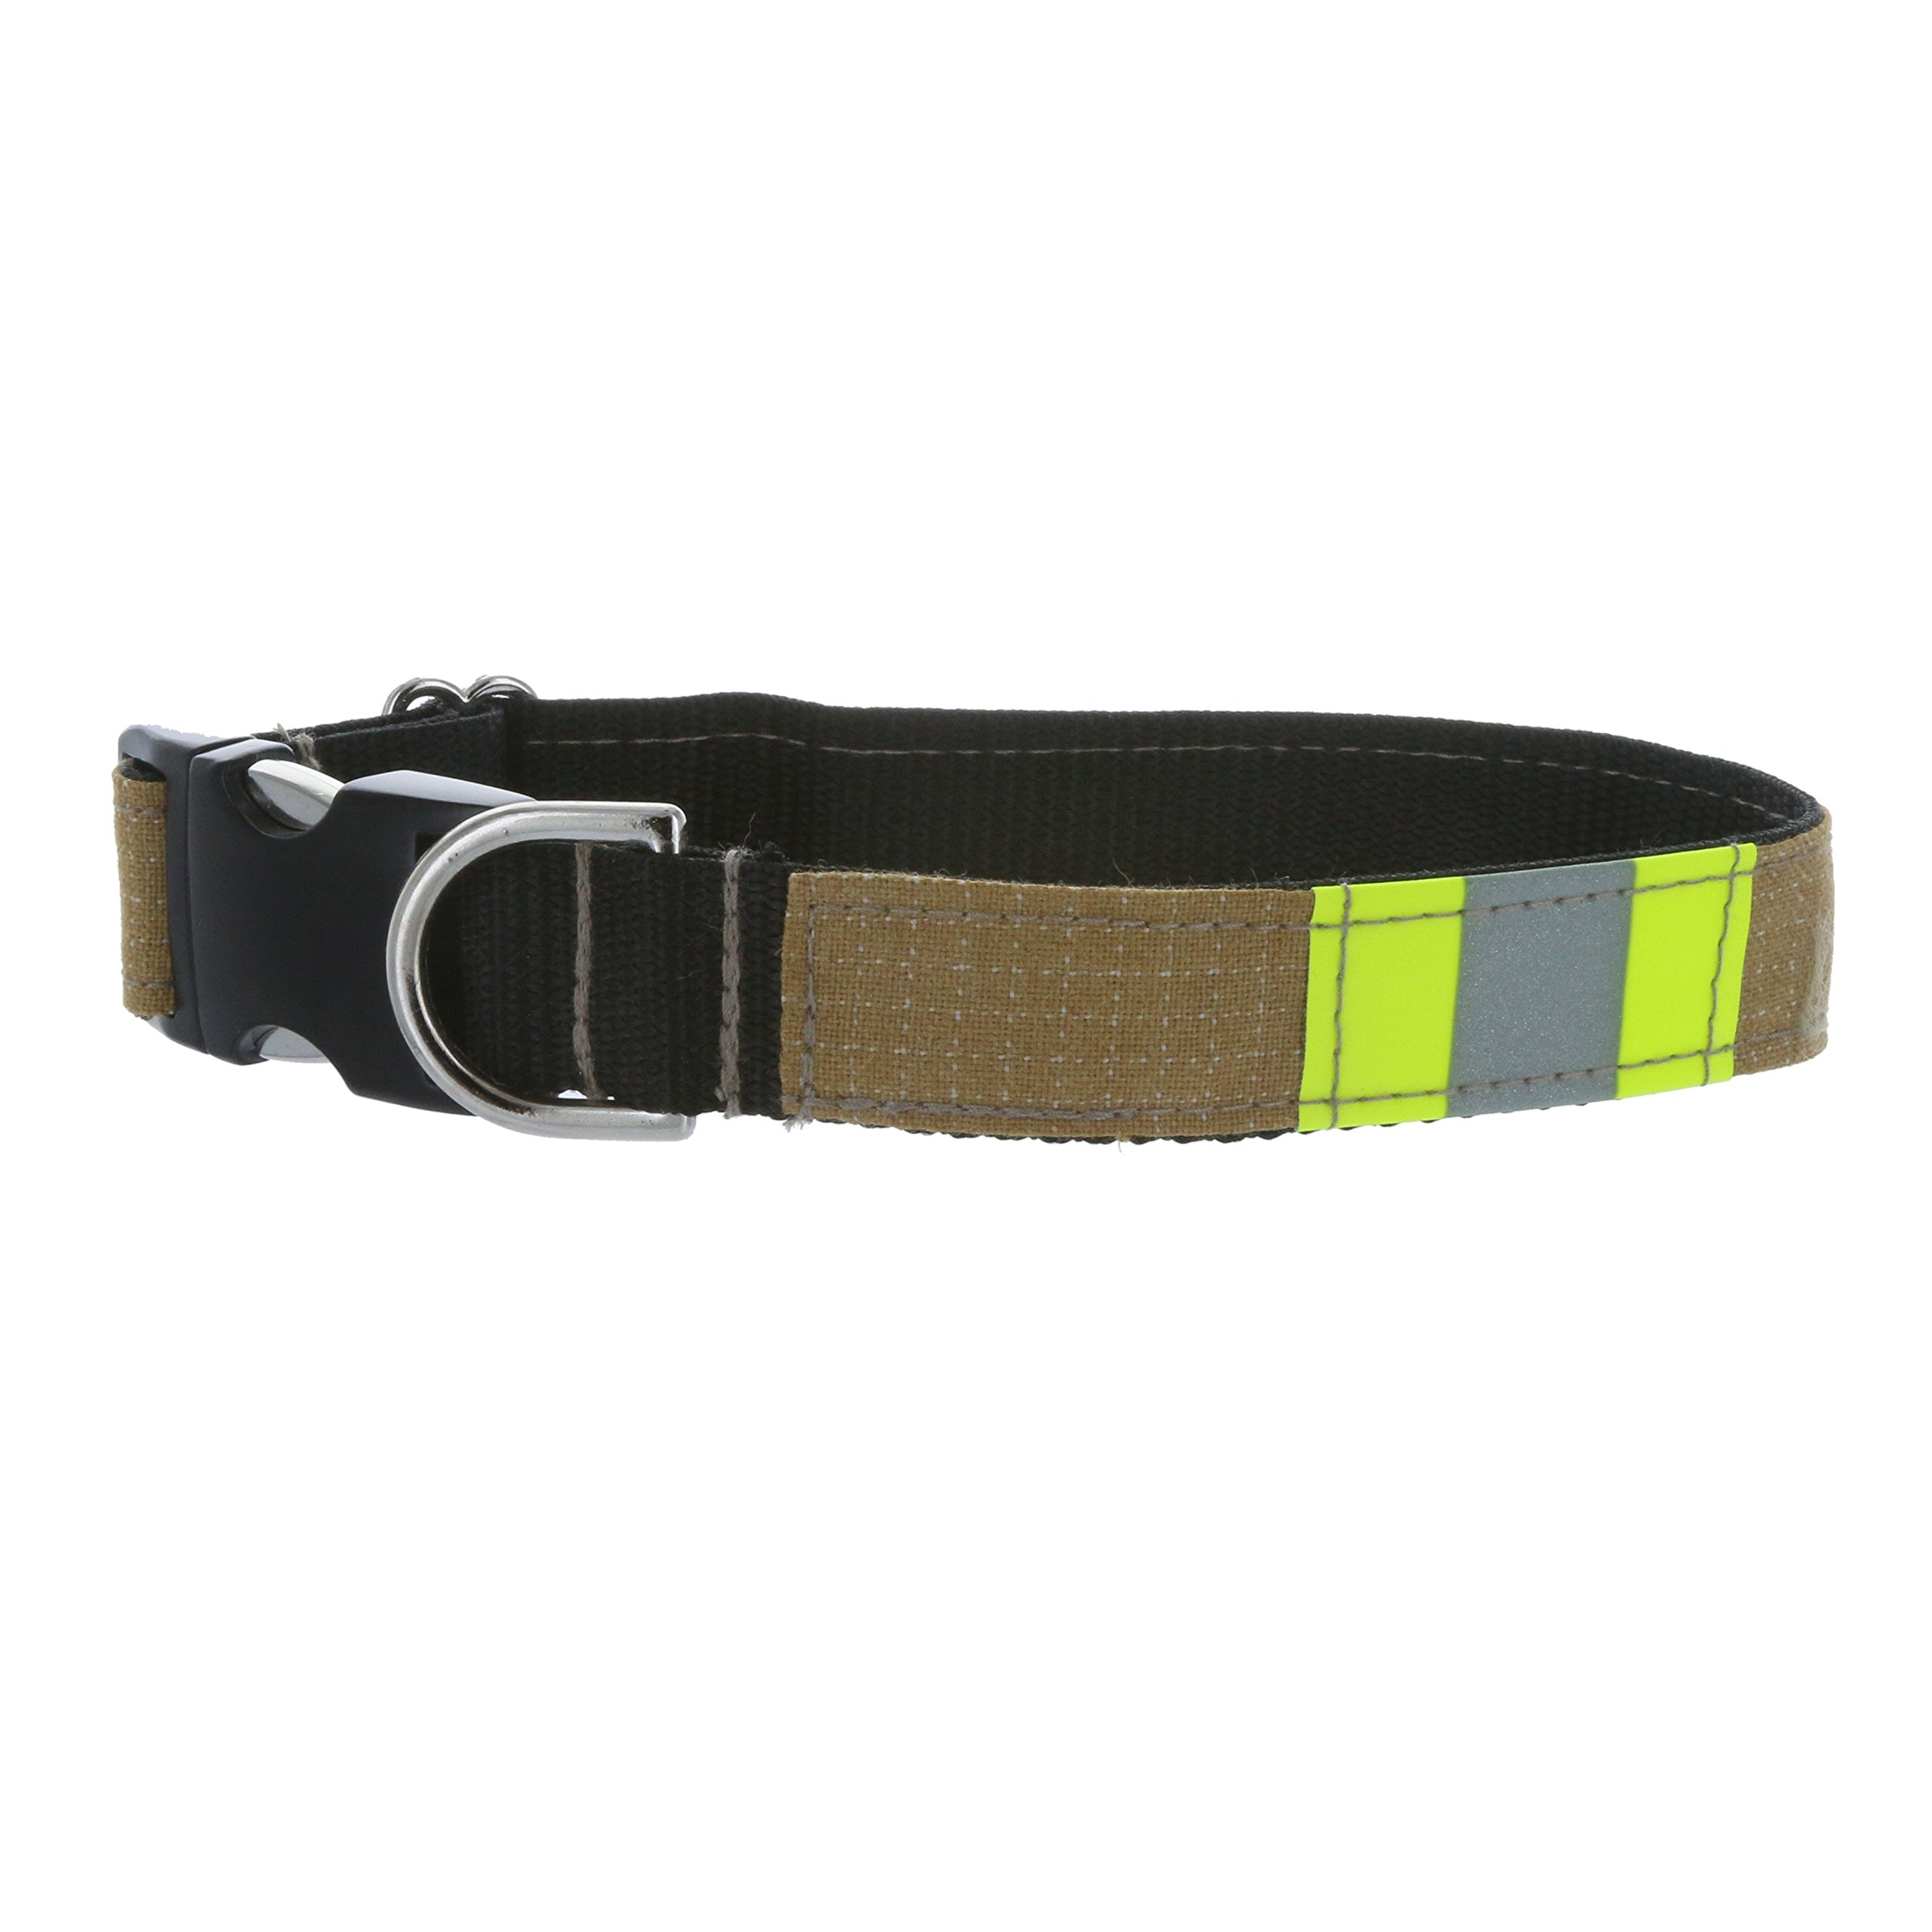 Fully Involved Stitching Firefighter Dog Collar Made from Repurposed Turnout Bunker Gear Material (Large (17''-25''))